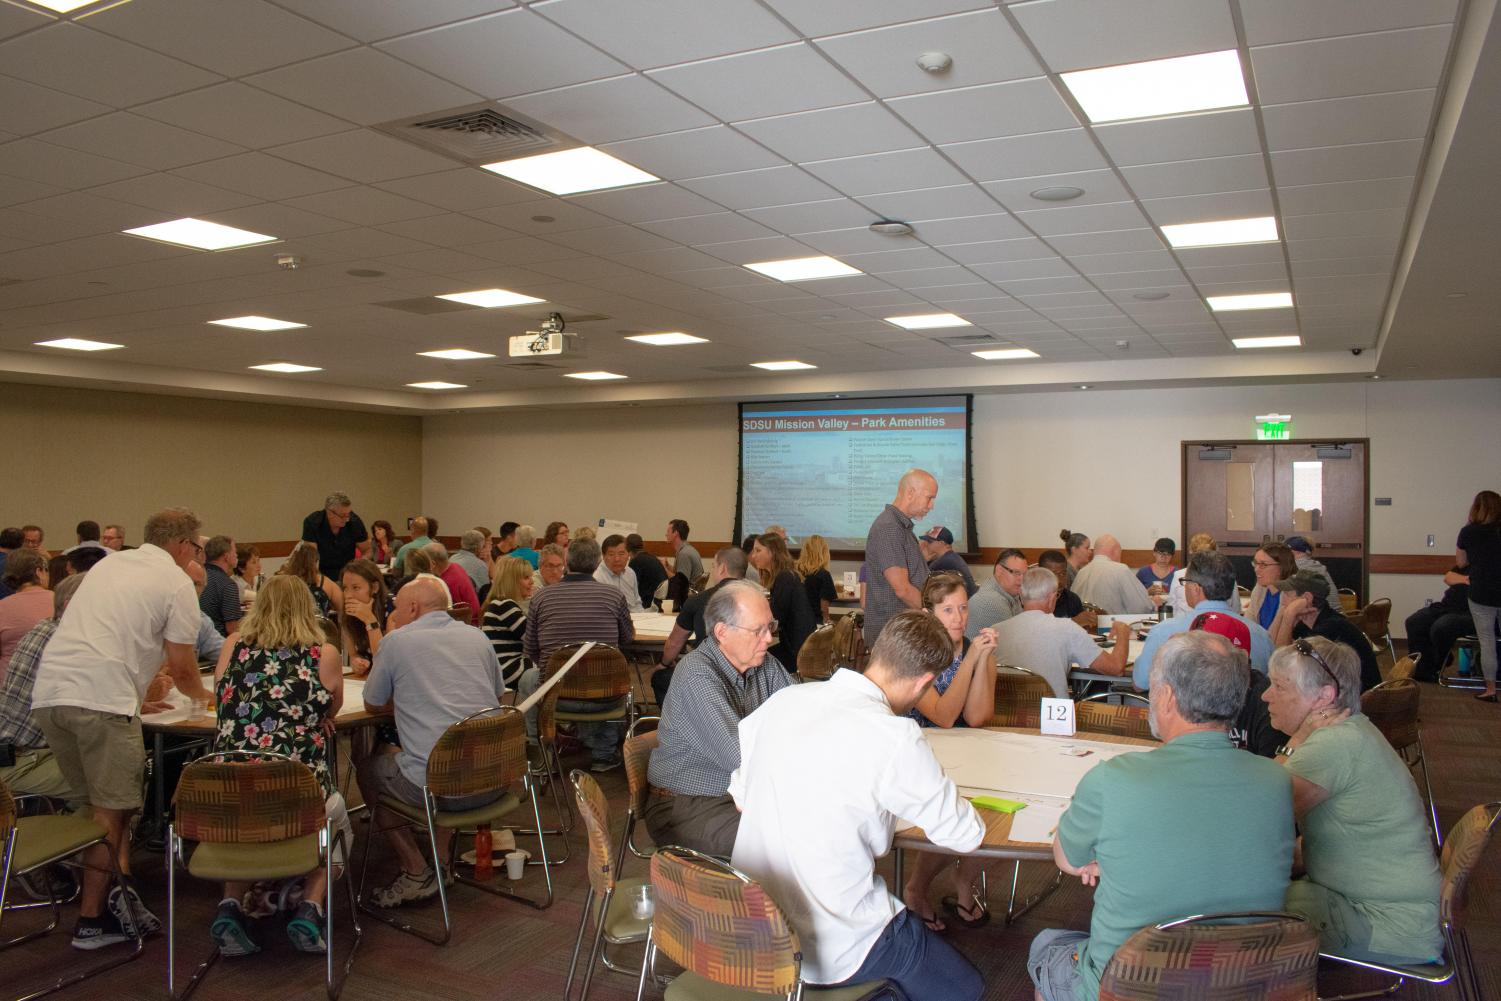 Workshop attendees provided feedback for a proposed river park at SDSU Mission Valley.